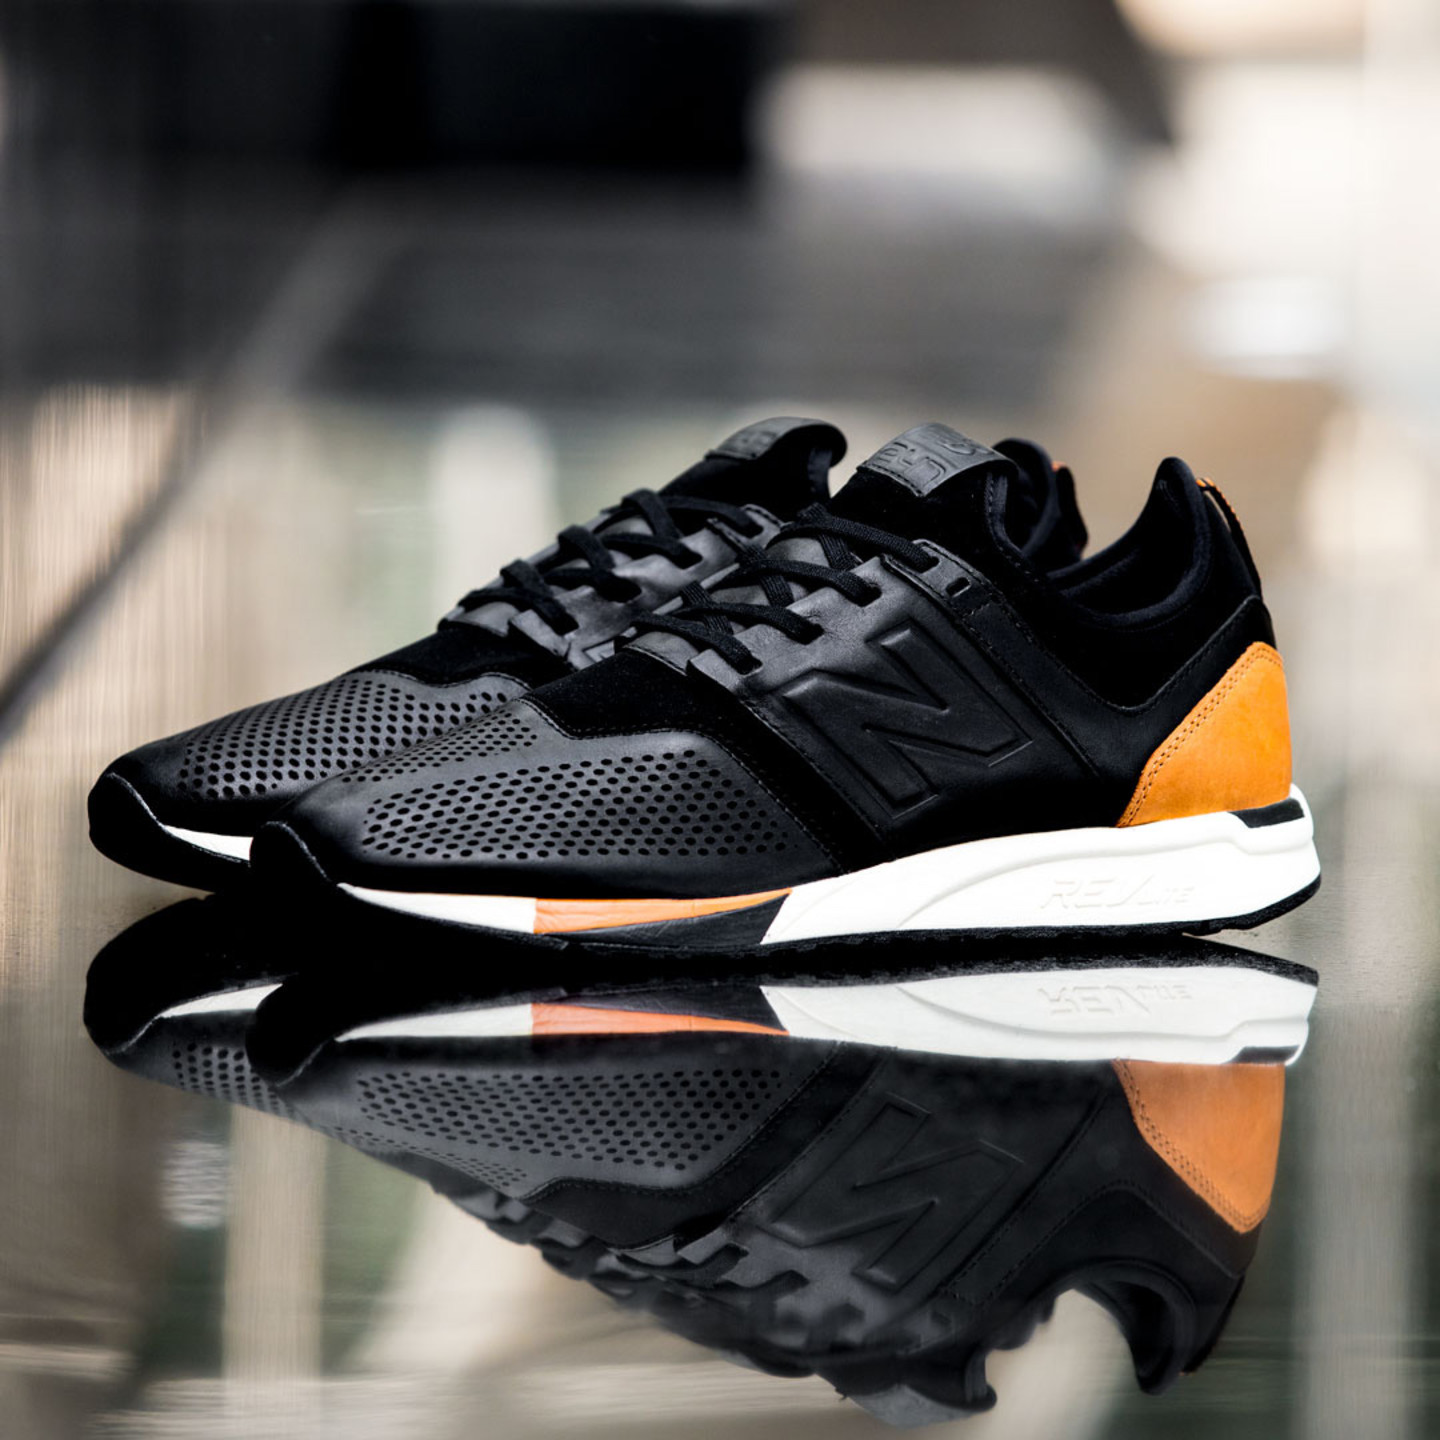 New Balance MRL 247 'Luxe Pack' Black / Brown / Cream MRL247BL-43